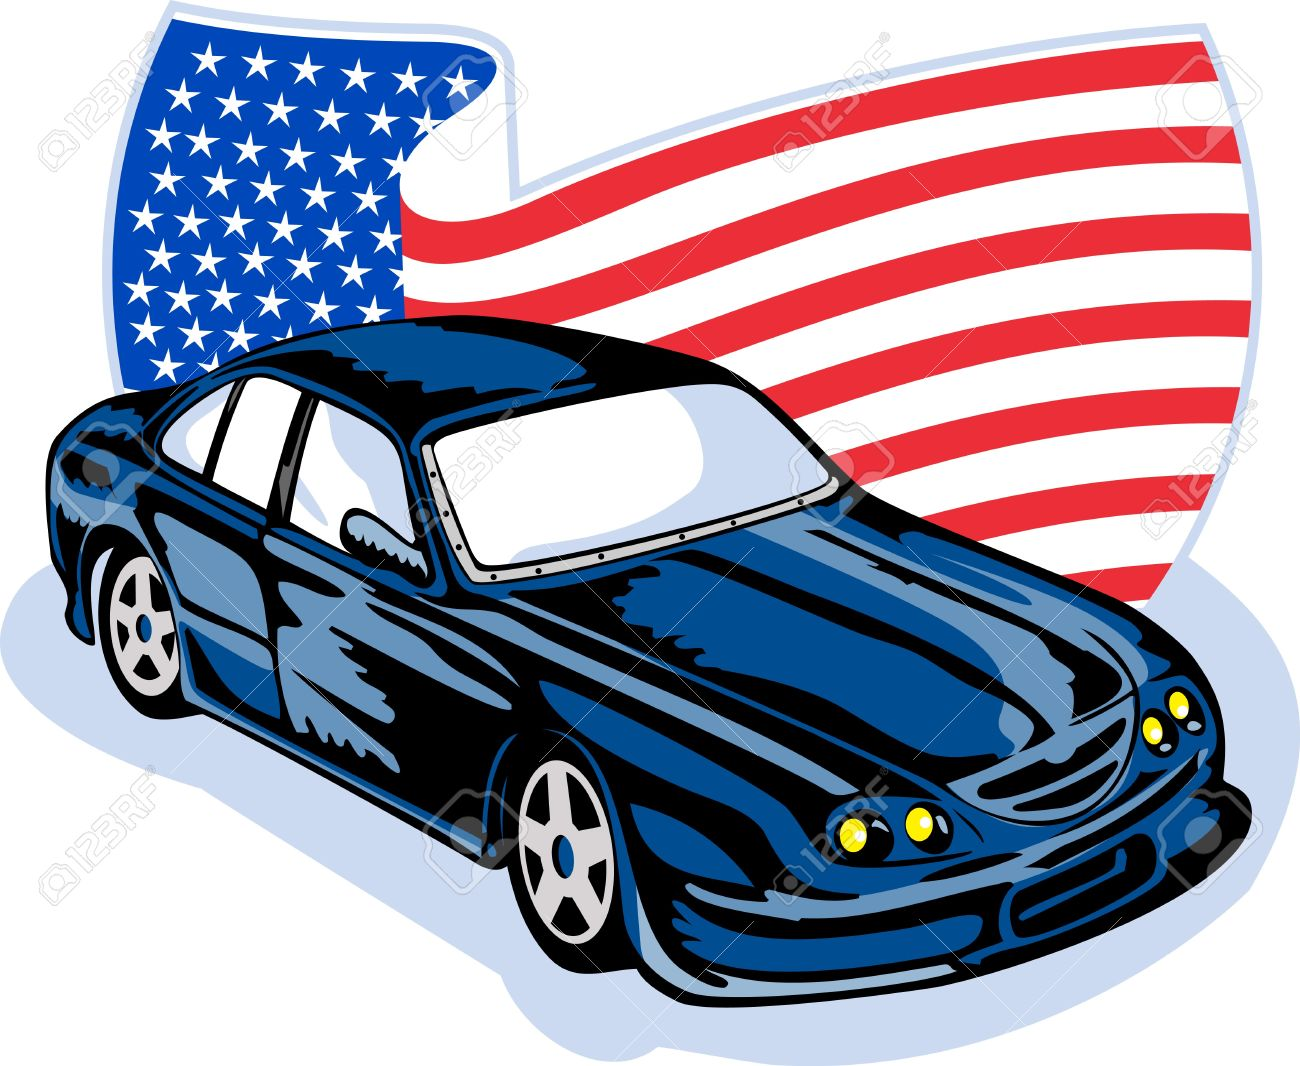 Graphic Design Illustration Of An American Ford GT Muscle Car With Stars And Stripes Flag Isolated